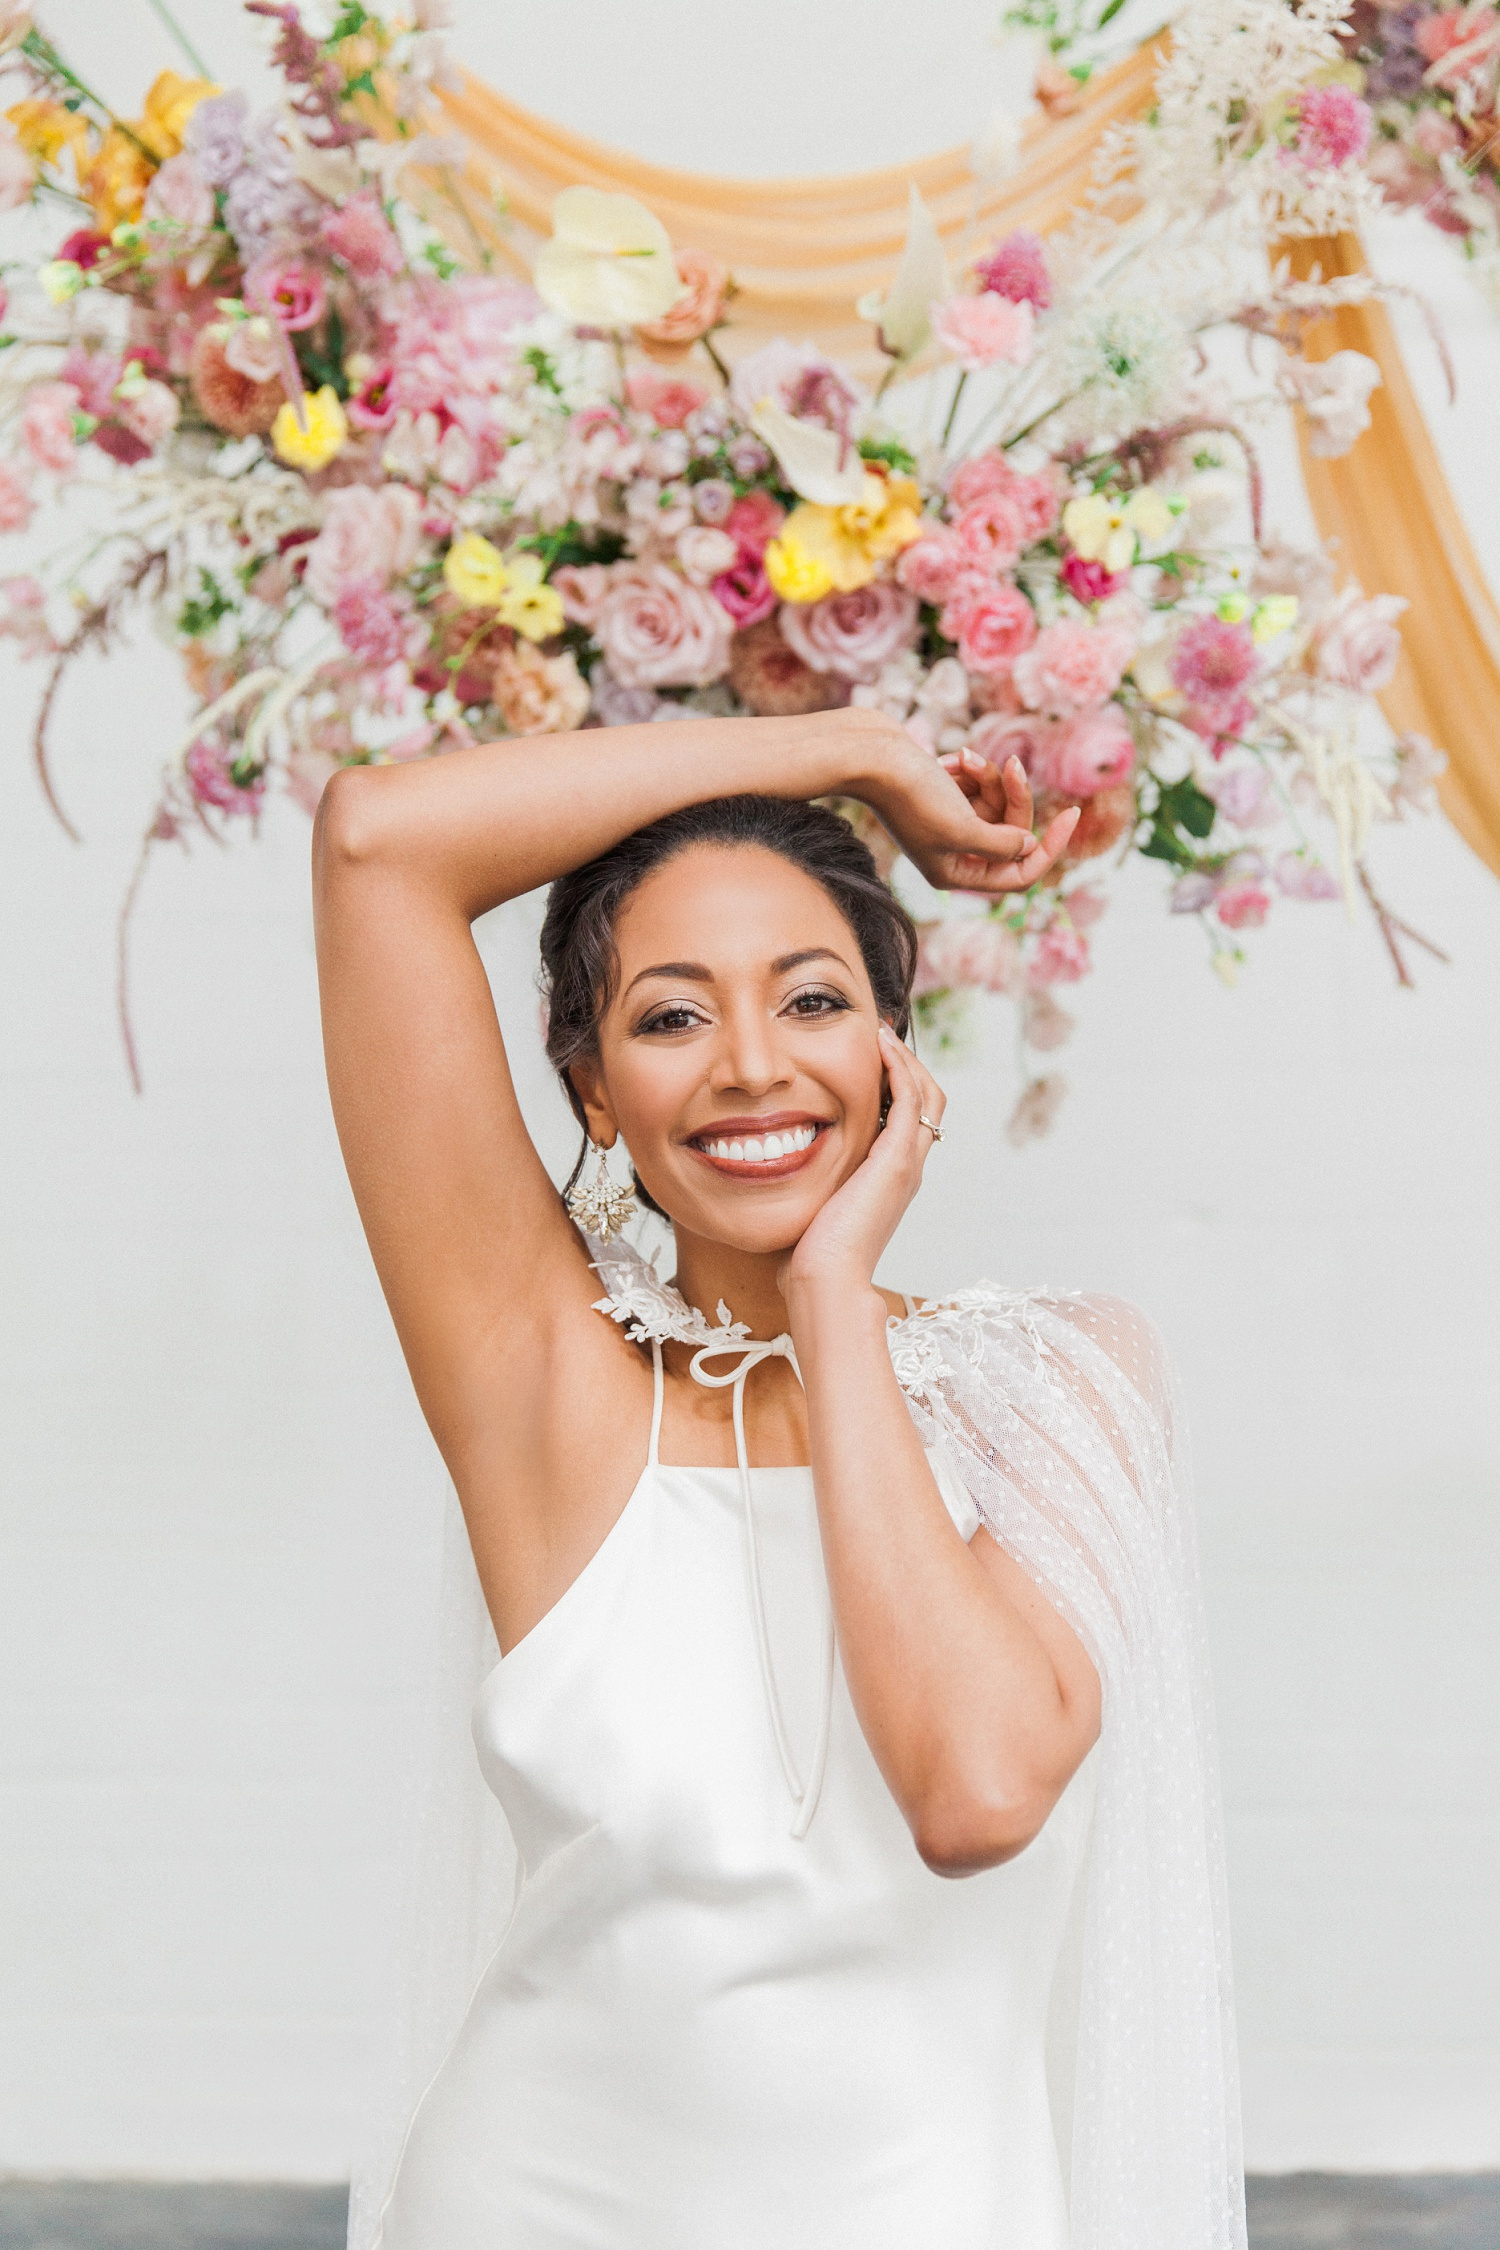 Colourful spring wedding editorial in London featuring a beautiful mixed race bride